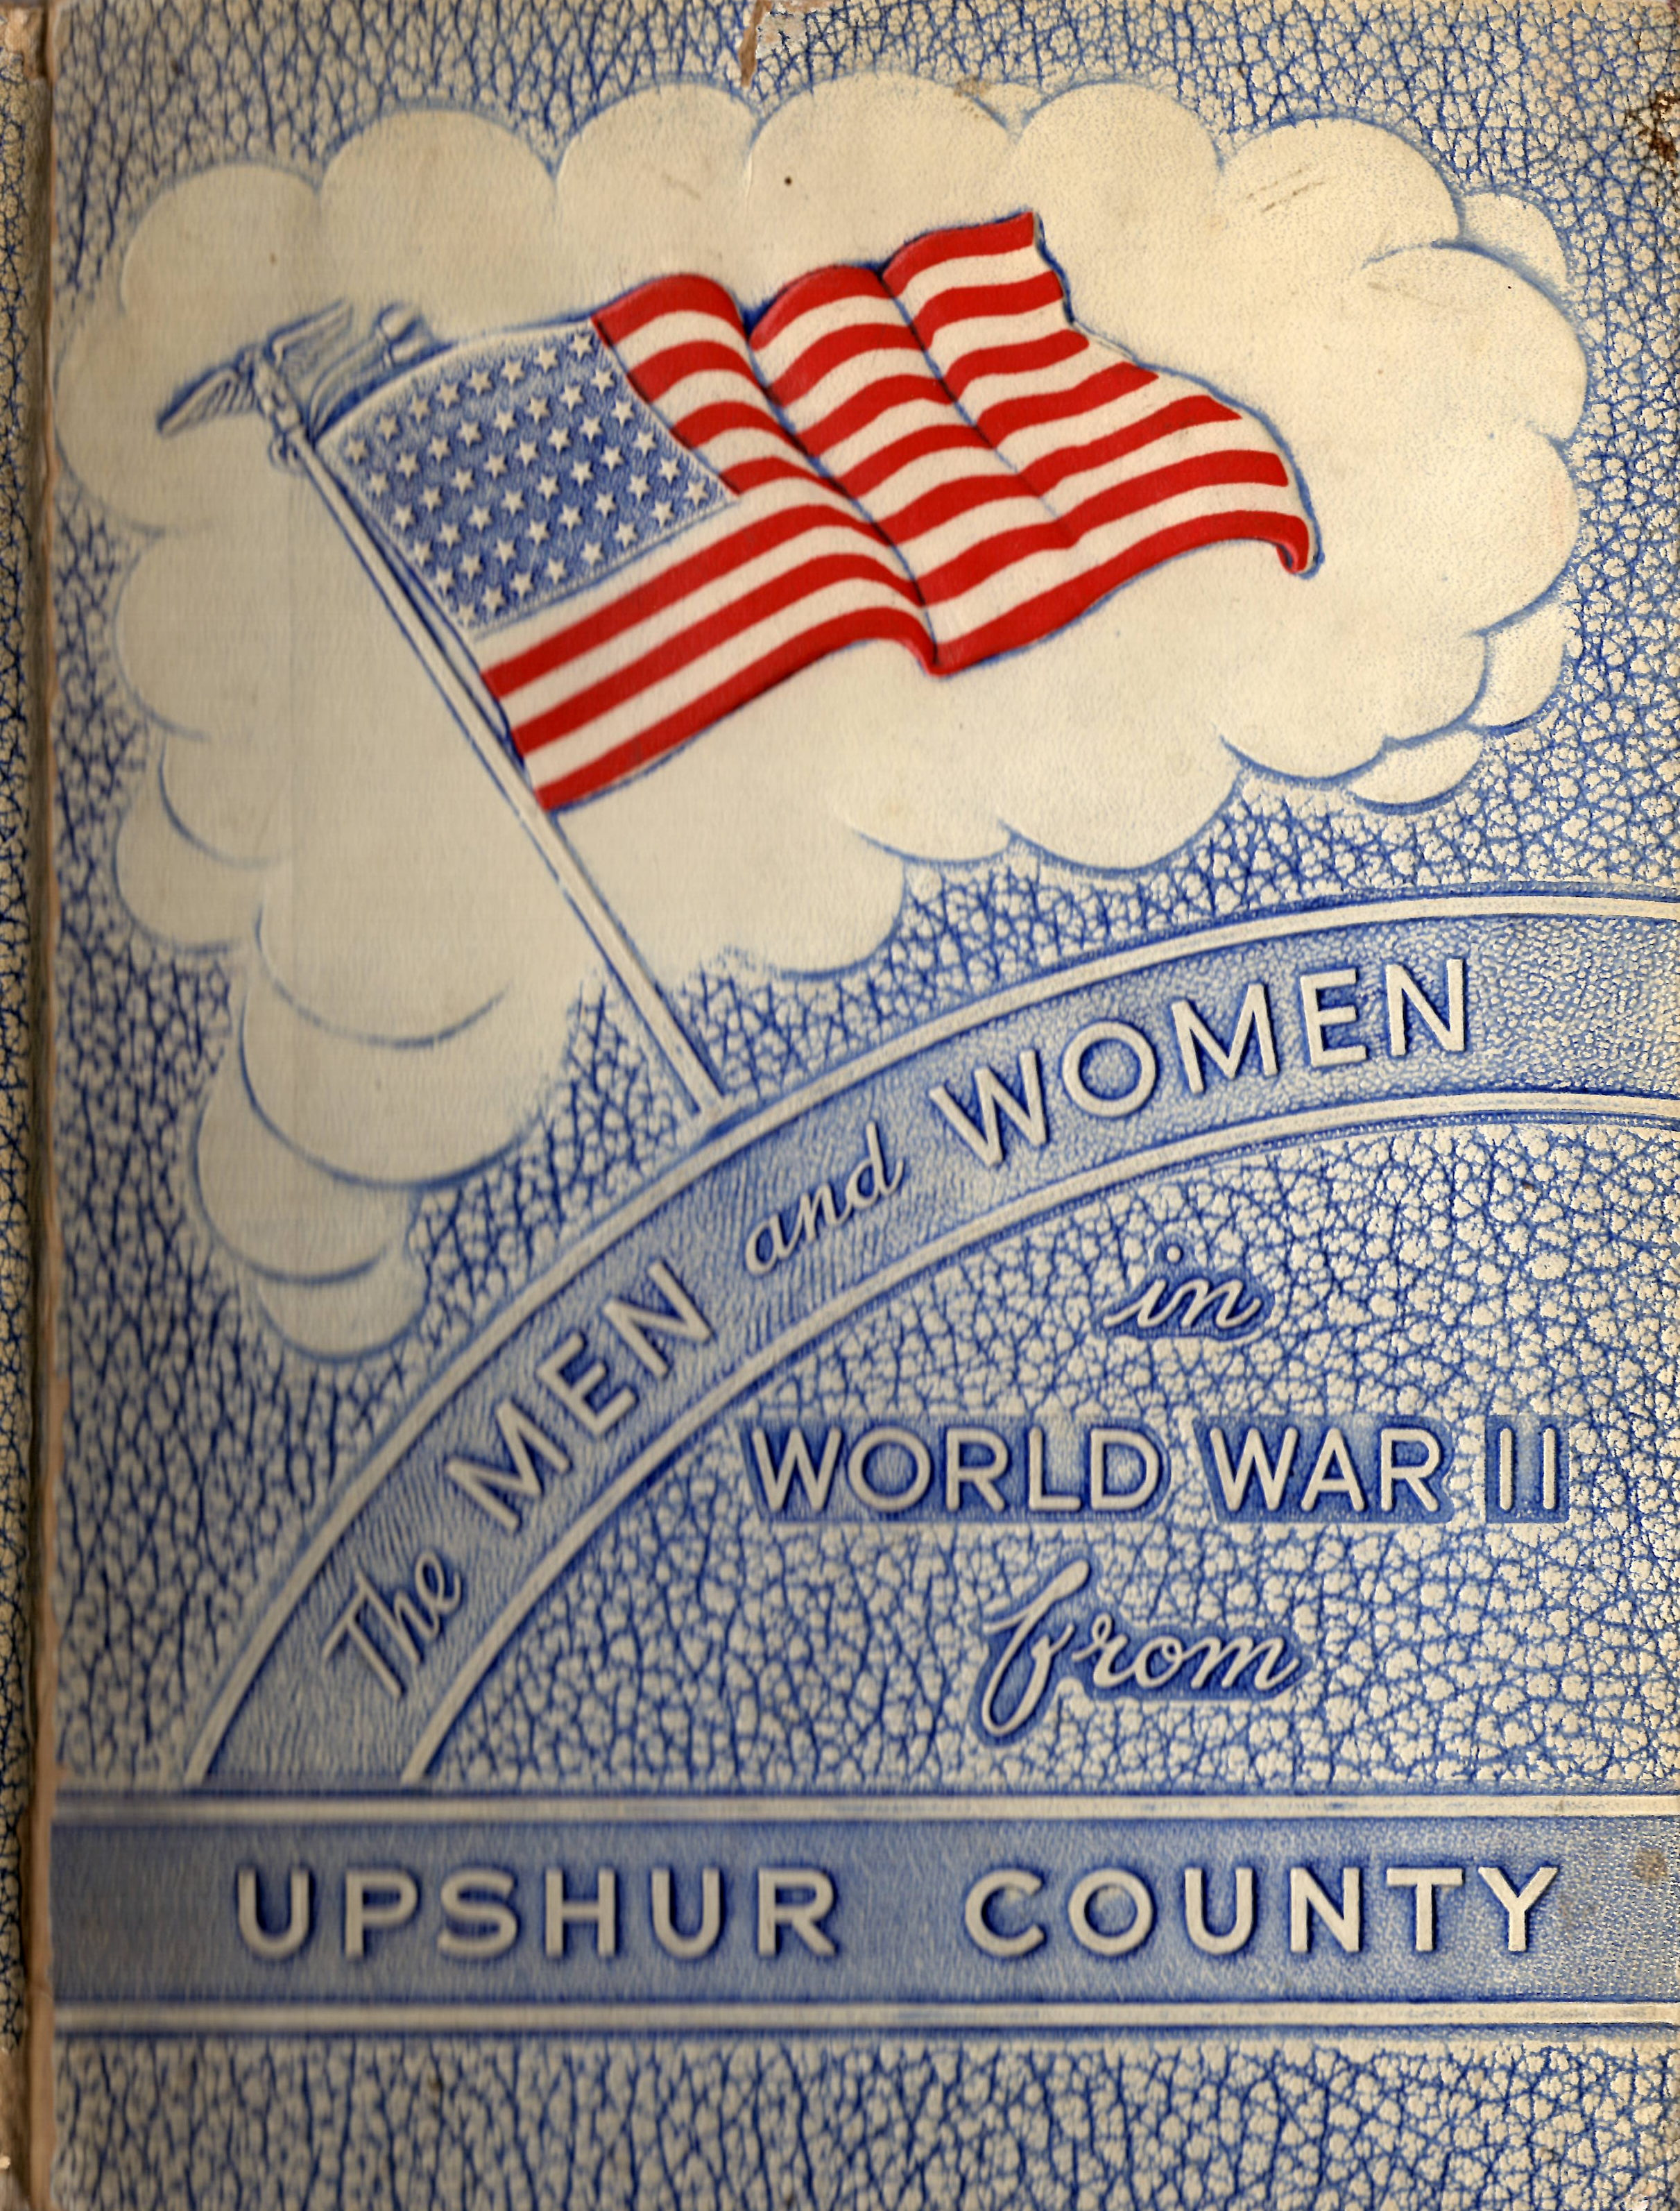 Men and women in the Armed Forces from Upshur County Texas